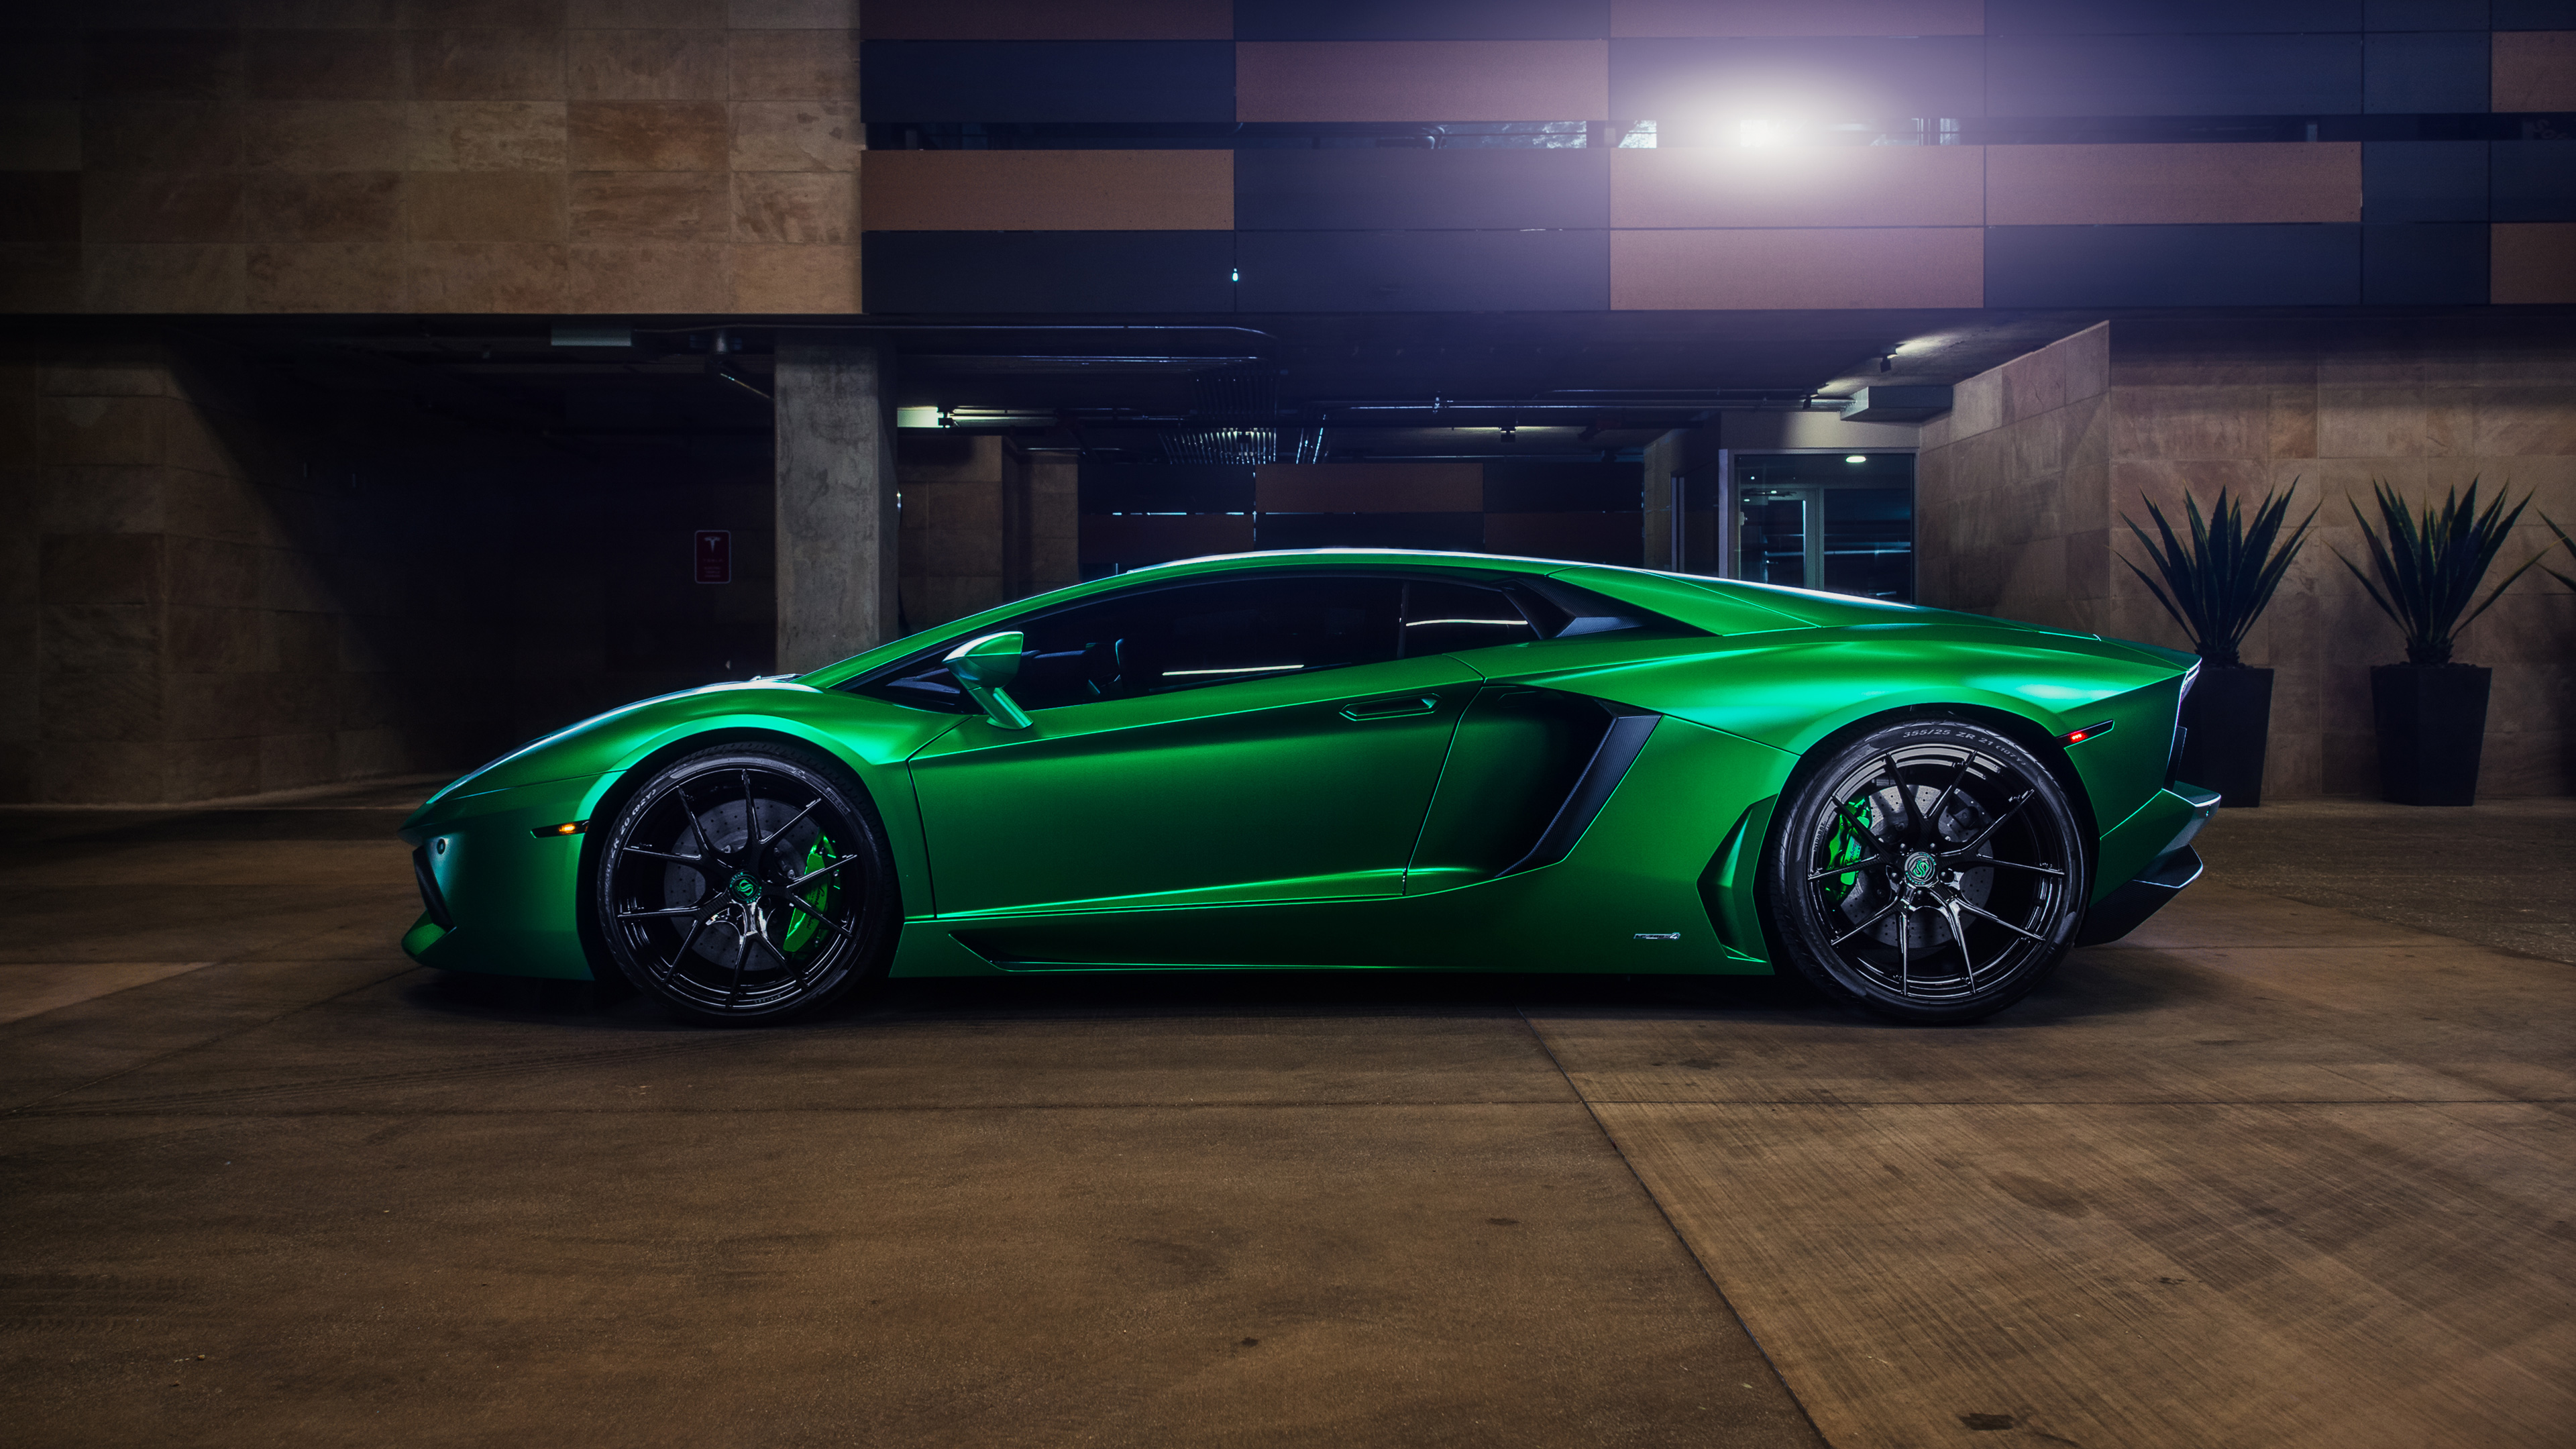 Lamborghini Aventador 4k Wallpaper Hd Car Wallpapers Id 6524